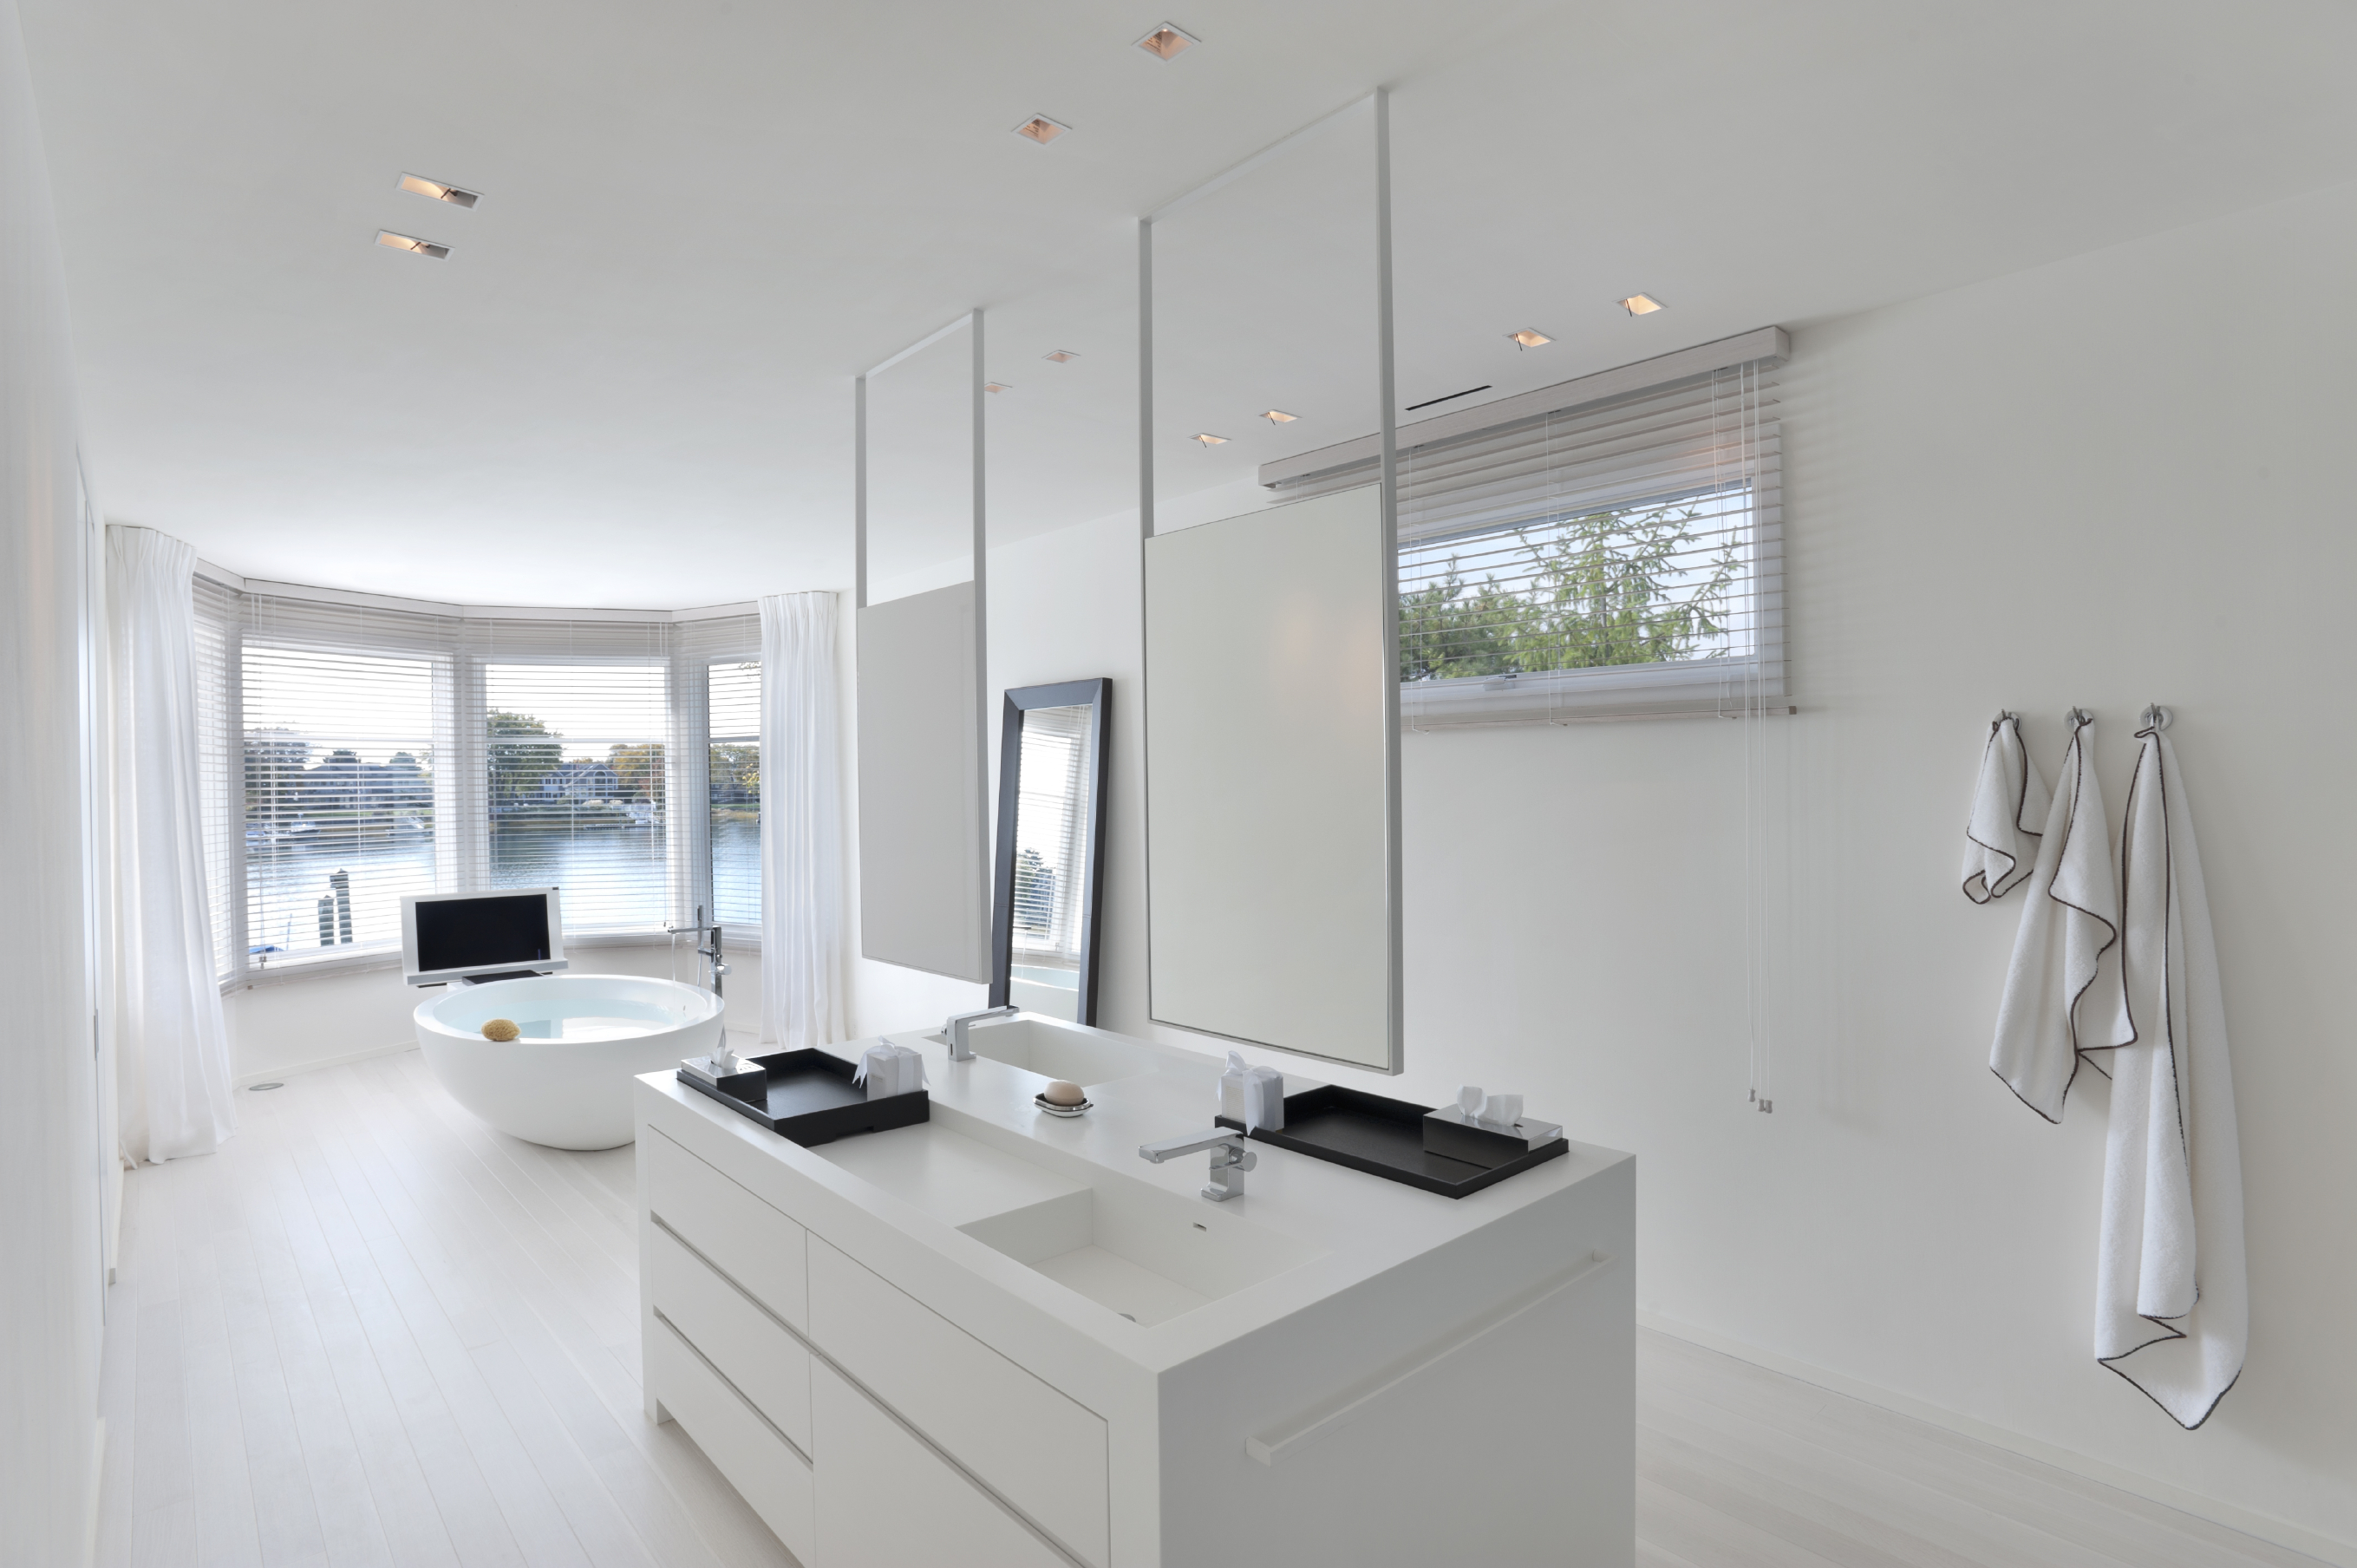 Bathroom Lighting Glasgow glasgow bathroom design & installation specialists - glasgow